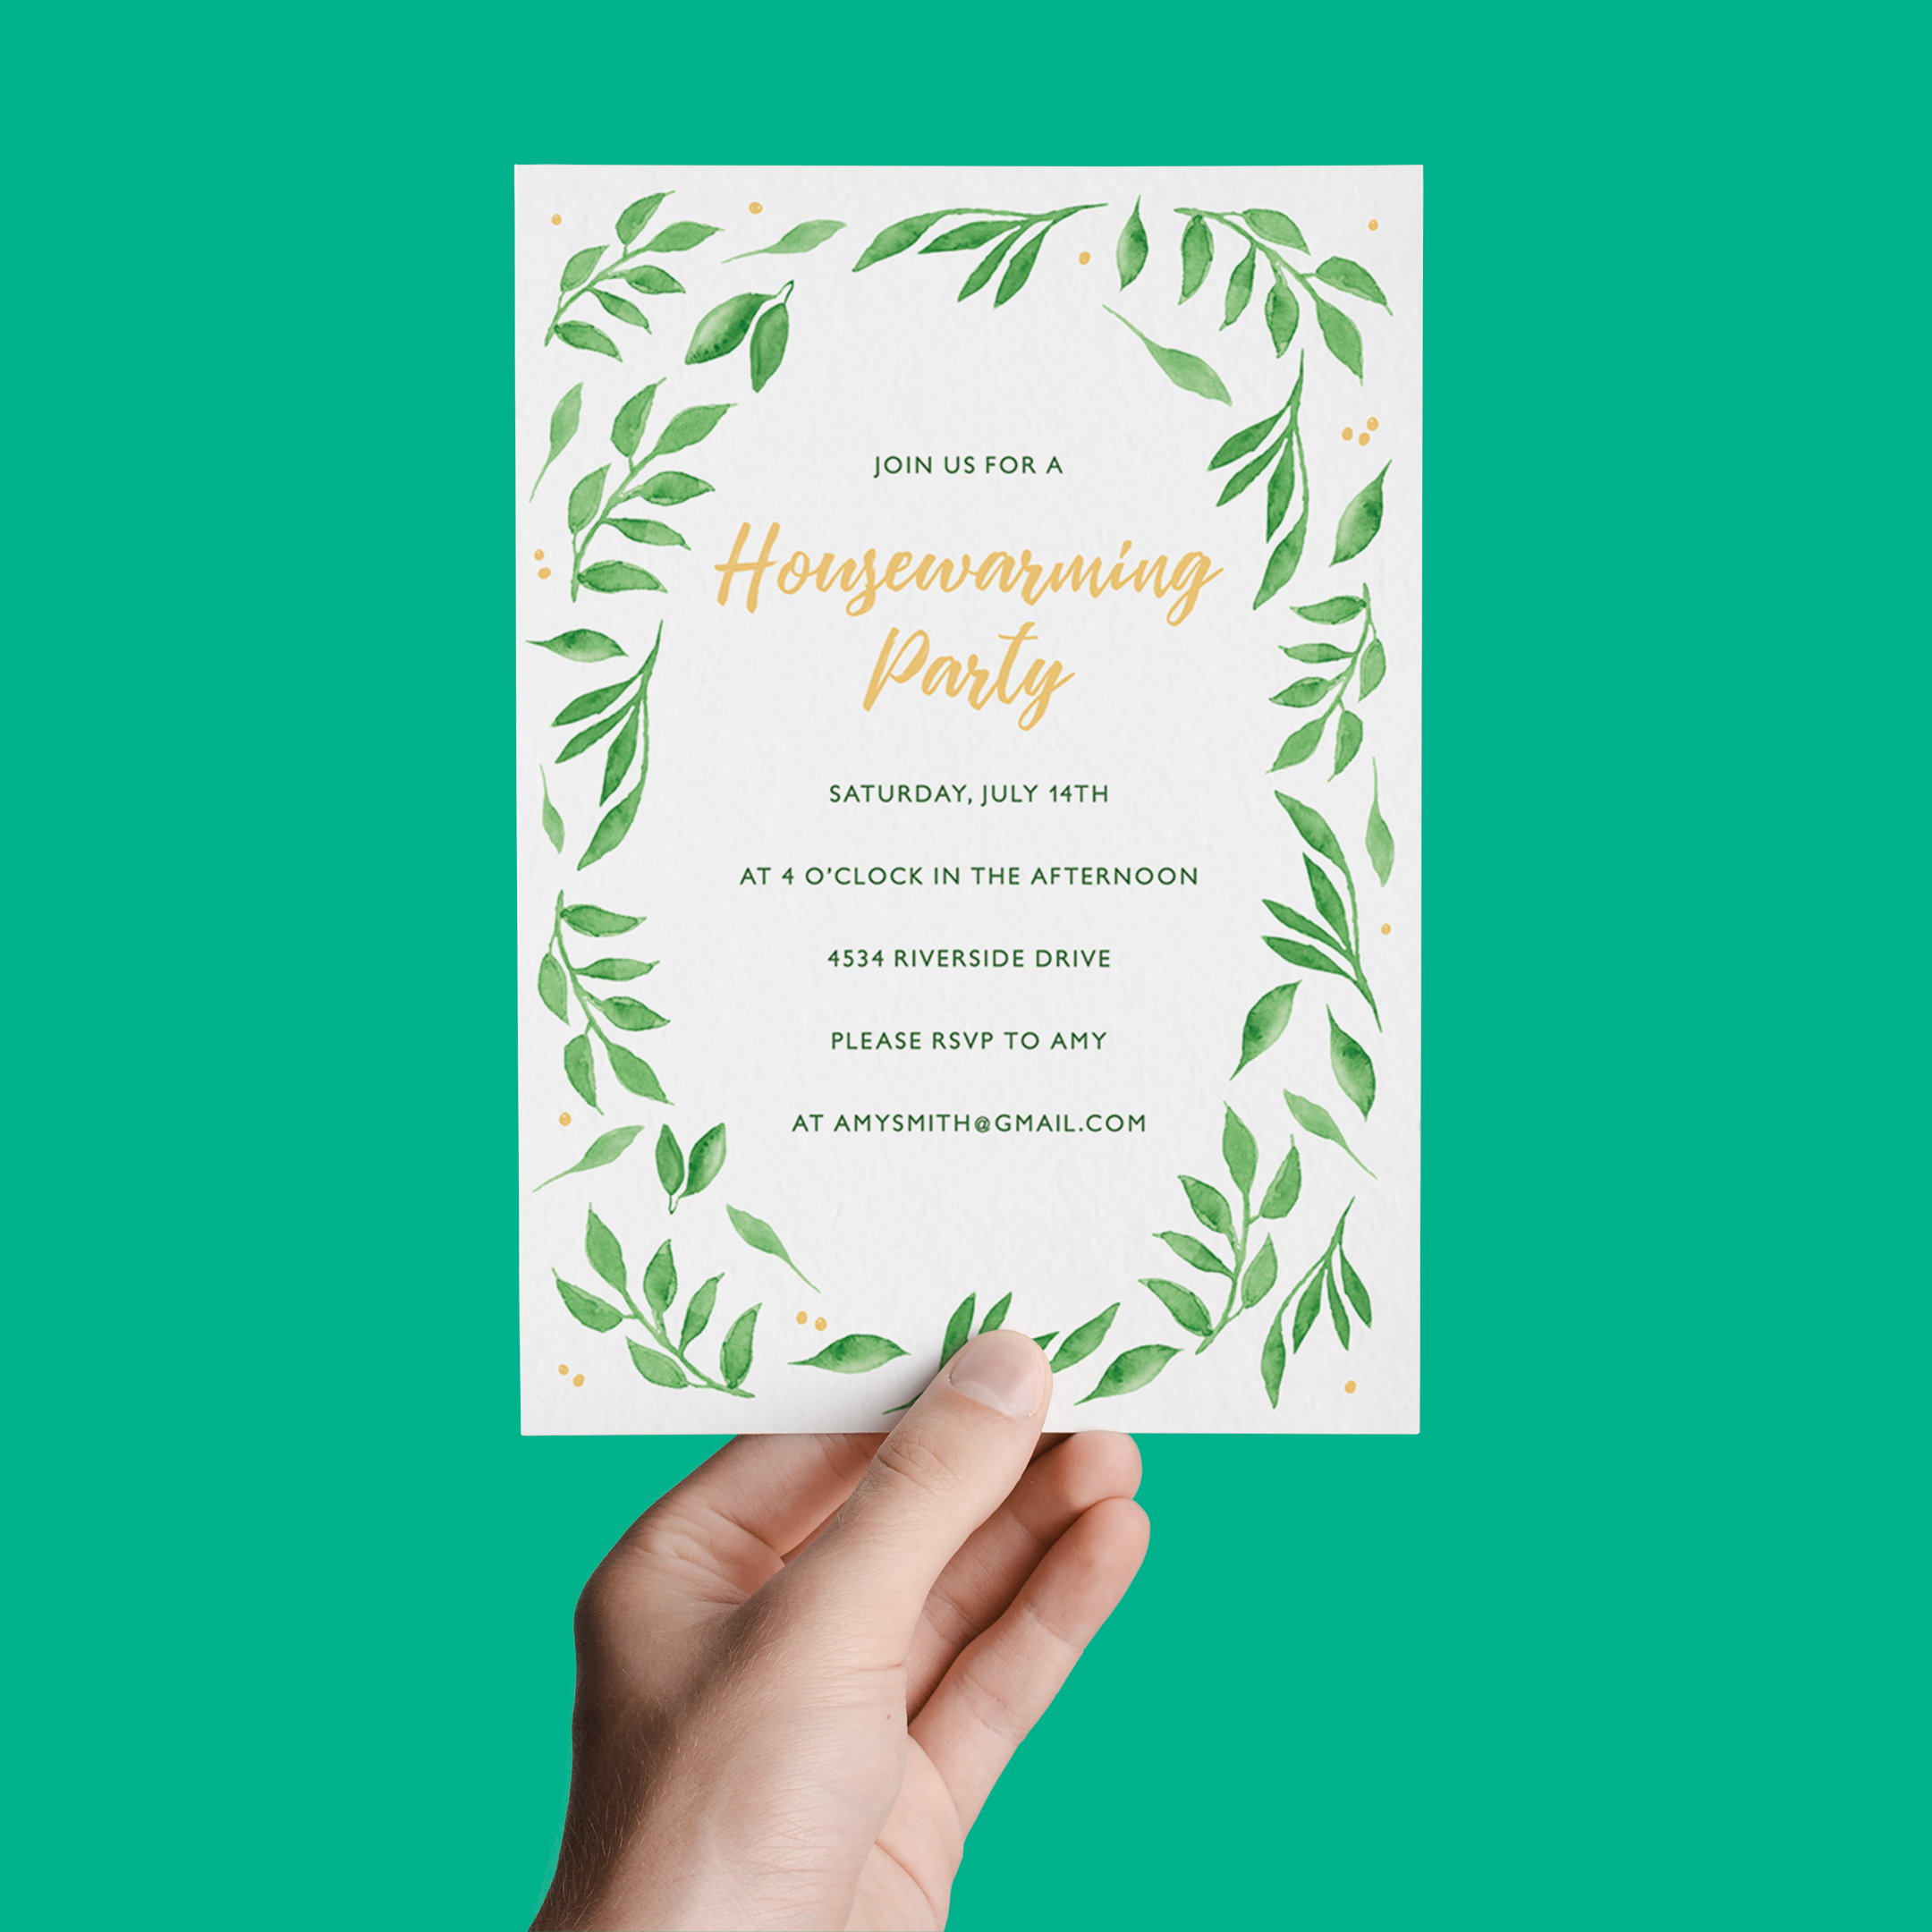 8 New Housewarming Party Invites -